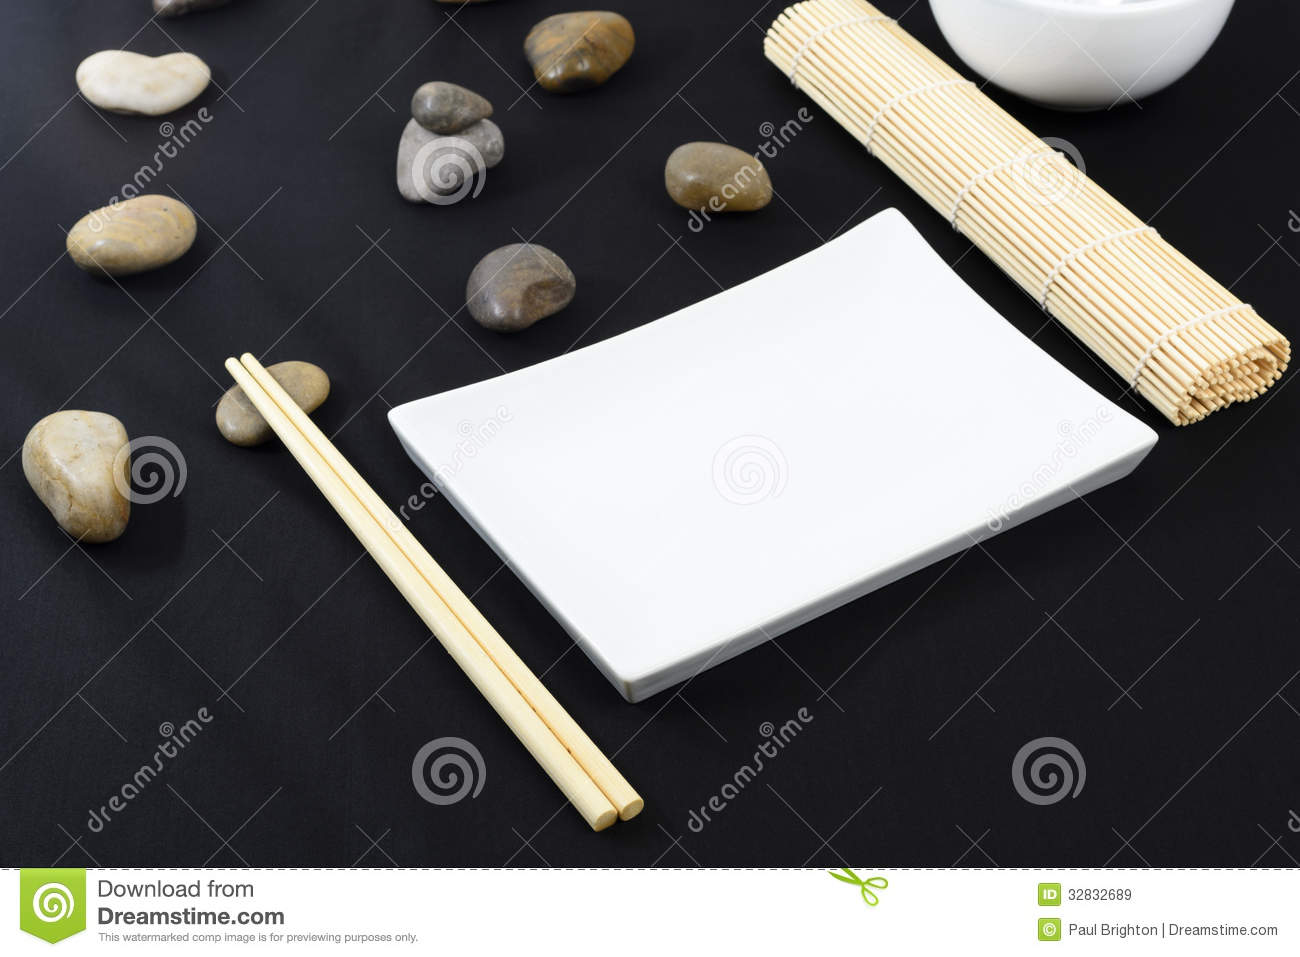 Pebbles On A Black Table Royalty Free Stock Photo